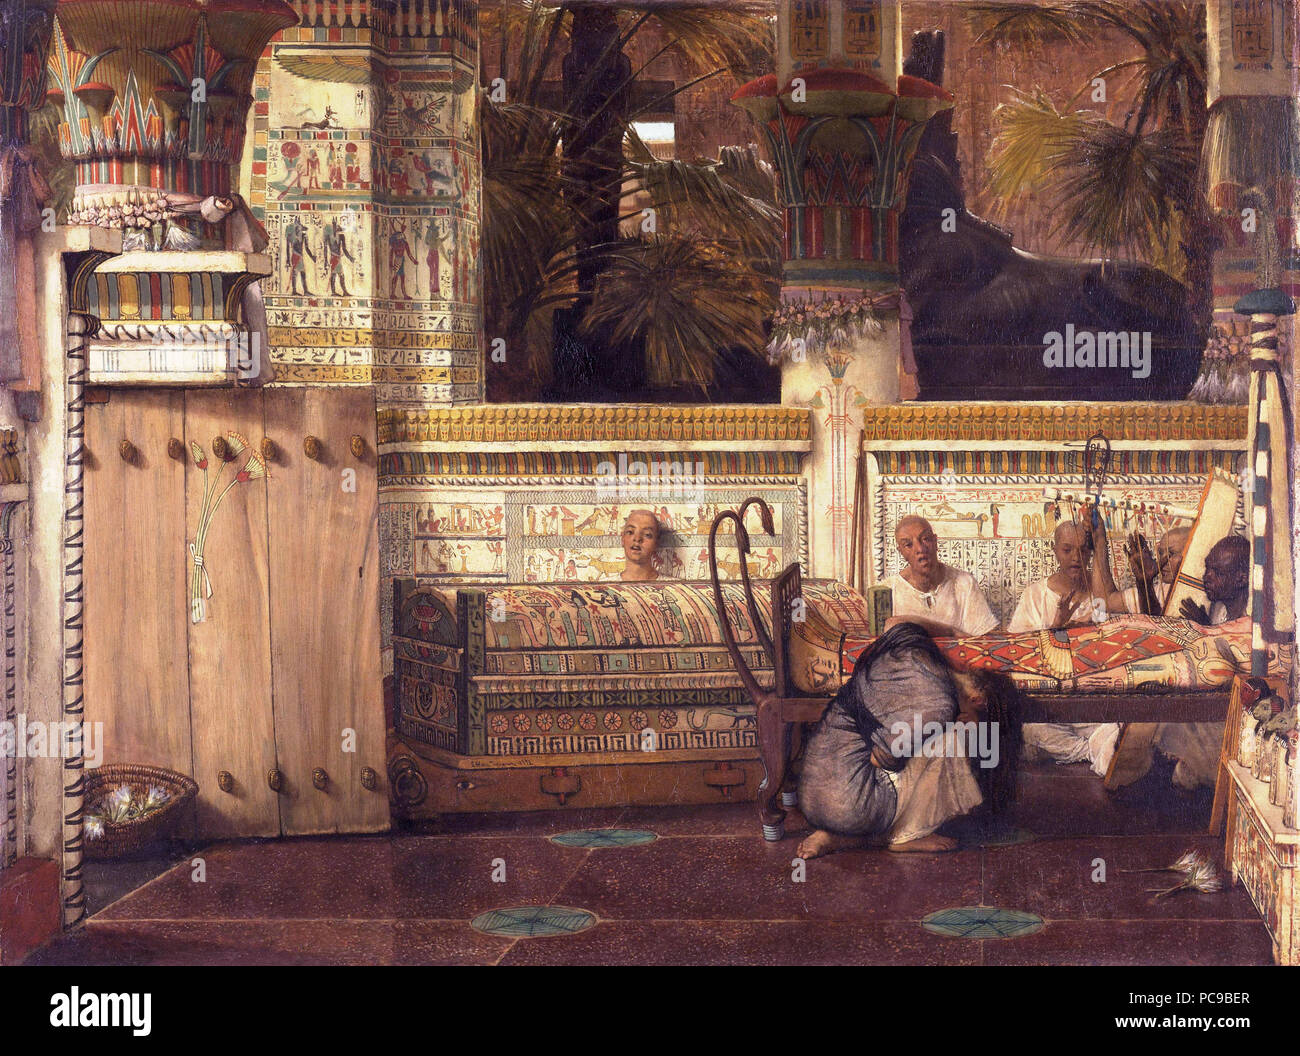 Egyptian temple with a kneeling grieving widow. Priests sing and play harp near the body of the deceased.  *oil on panel  *74.9 x 99.1 cm  *signed: L. Alma Tadema 1872 58 Lourens Alma Tadema - De Egyptische weduwe. Stock Photo